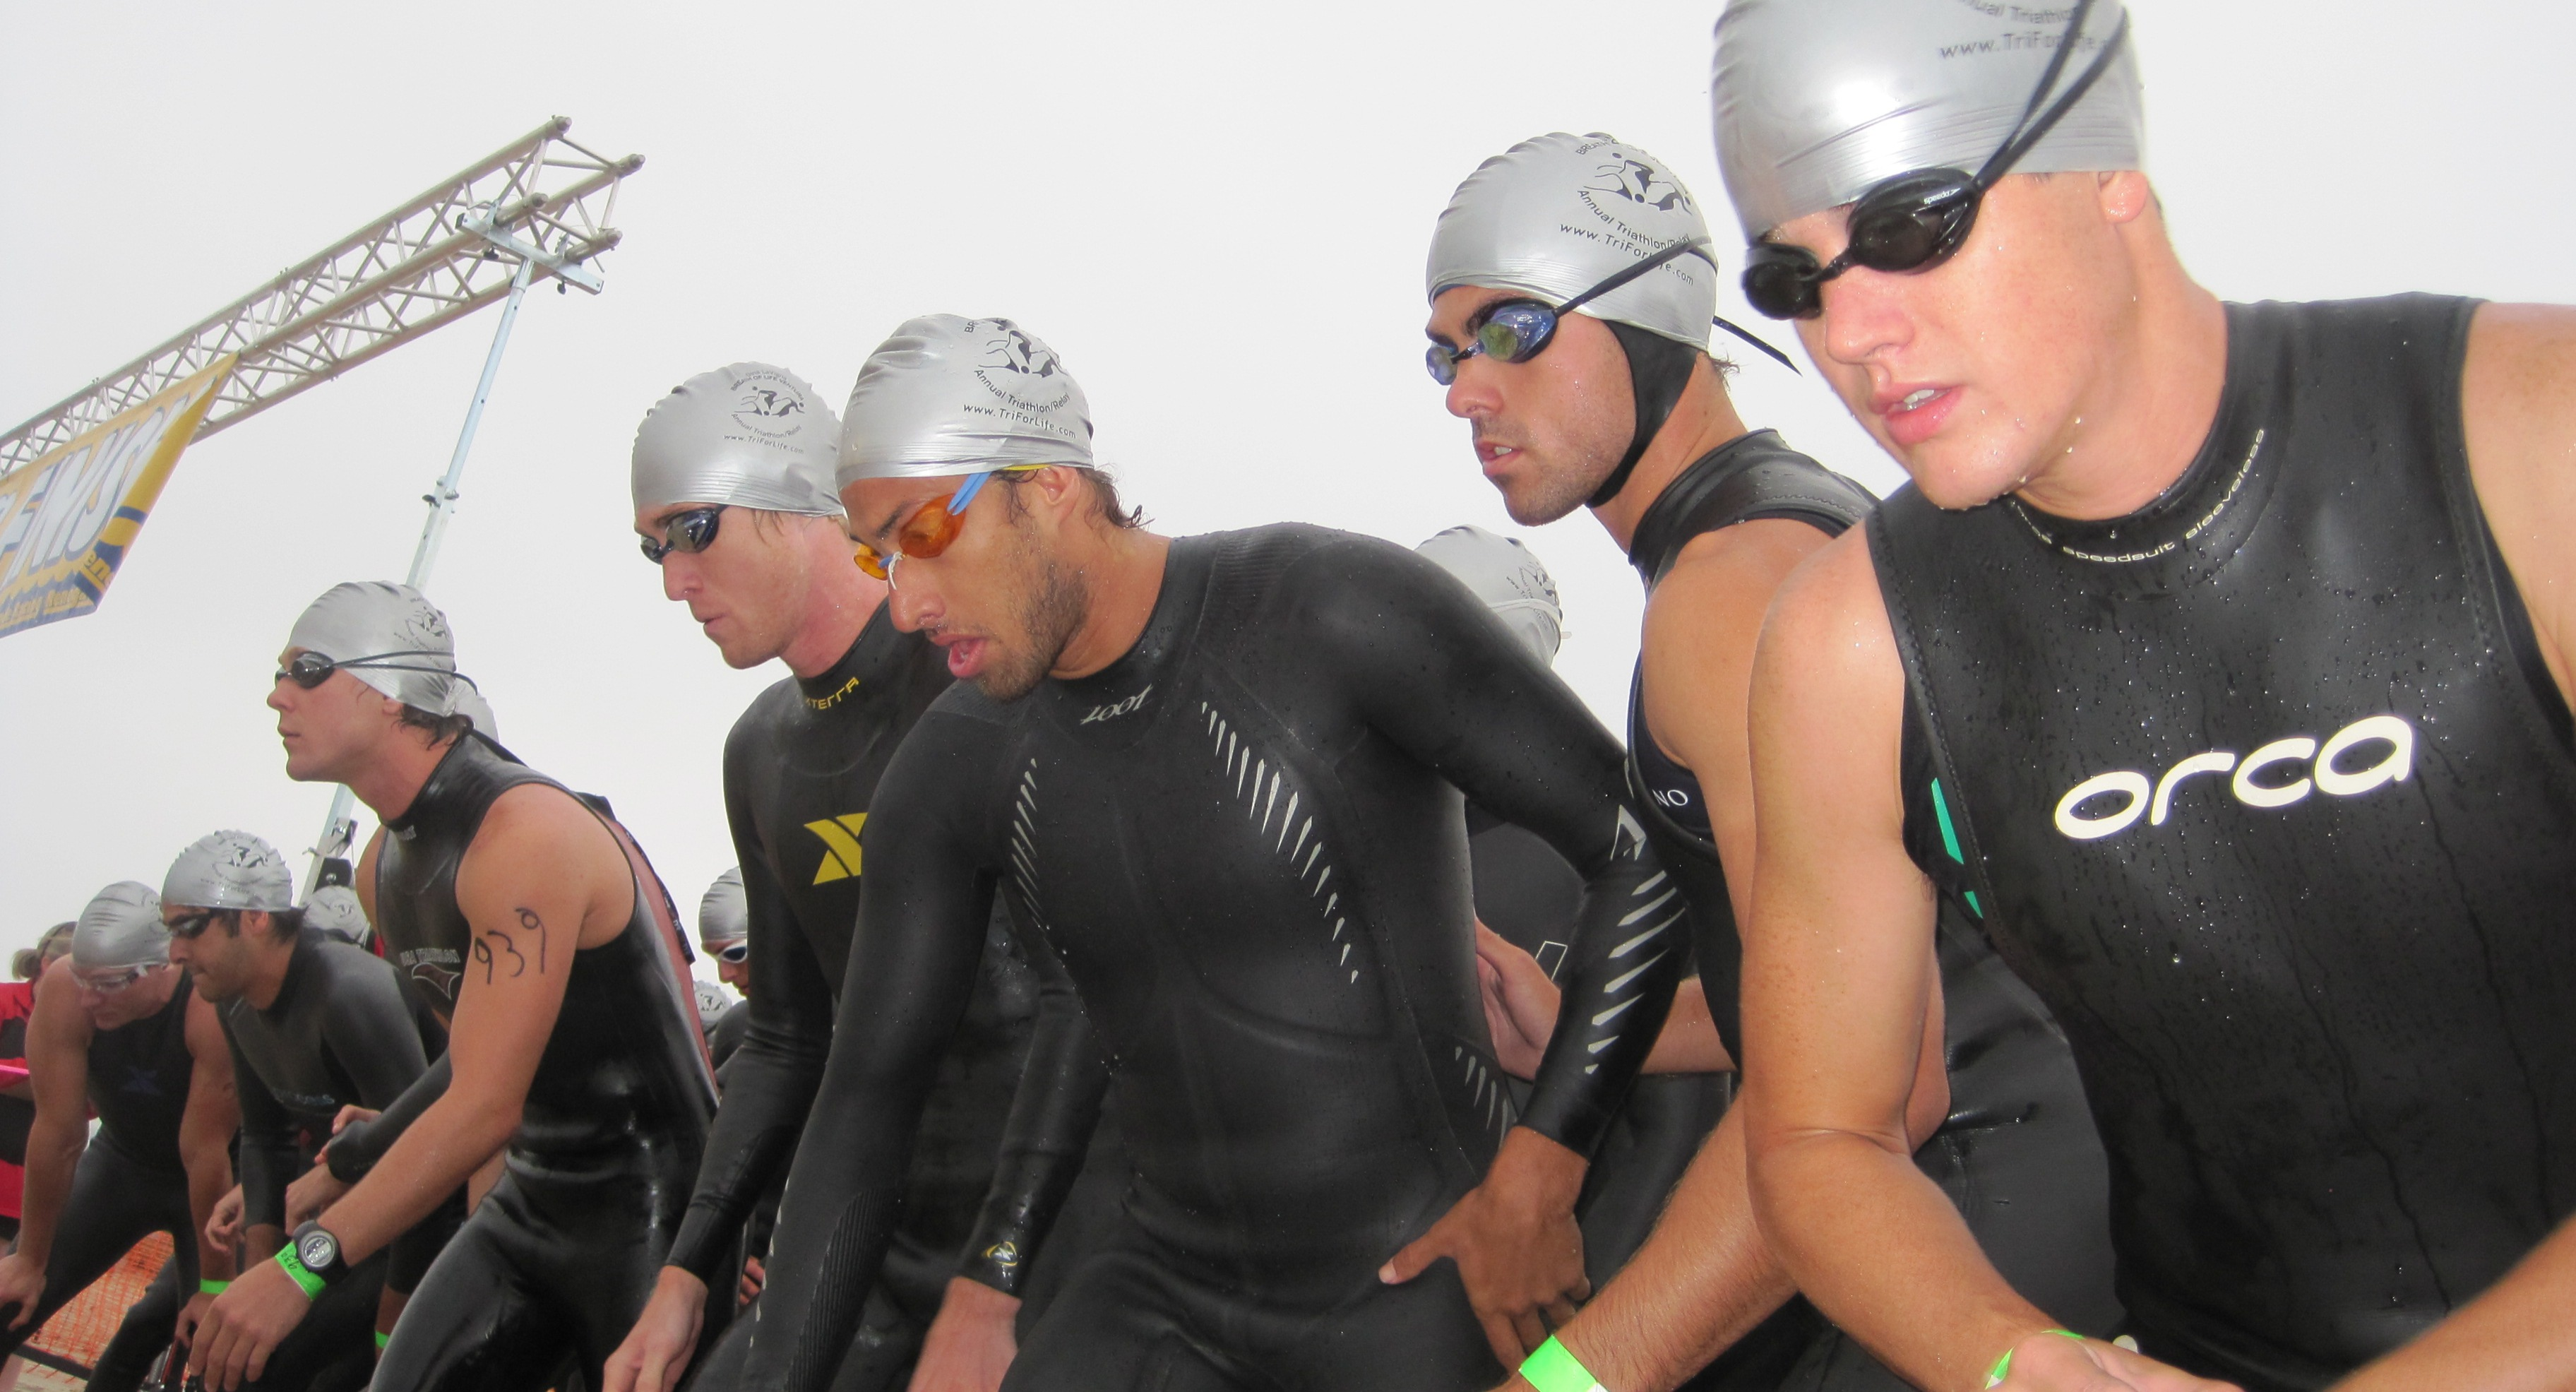 Swimmers lined up at the start of a triathlon